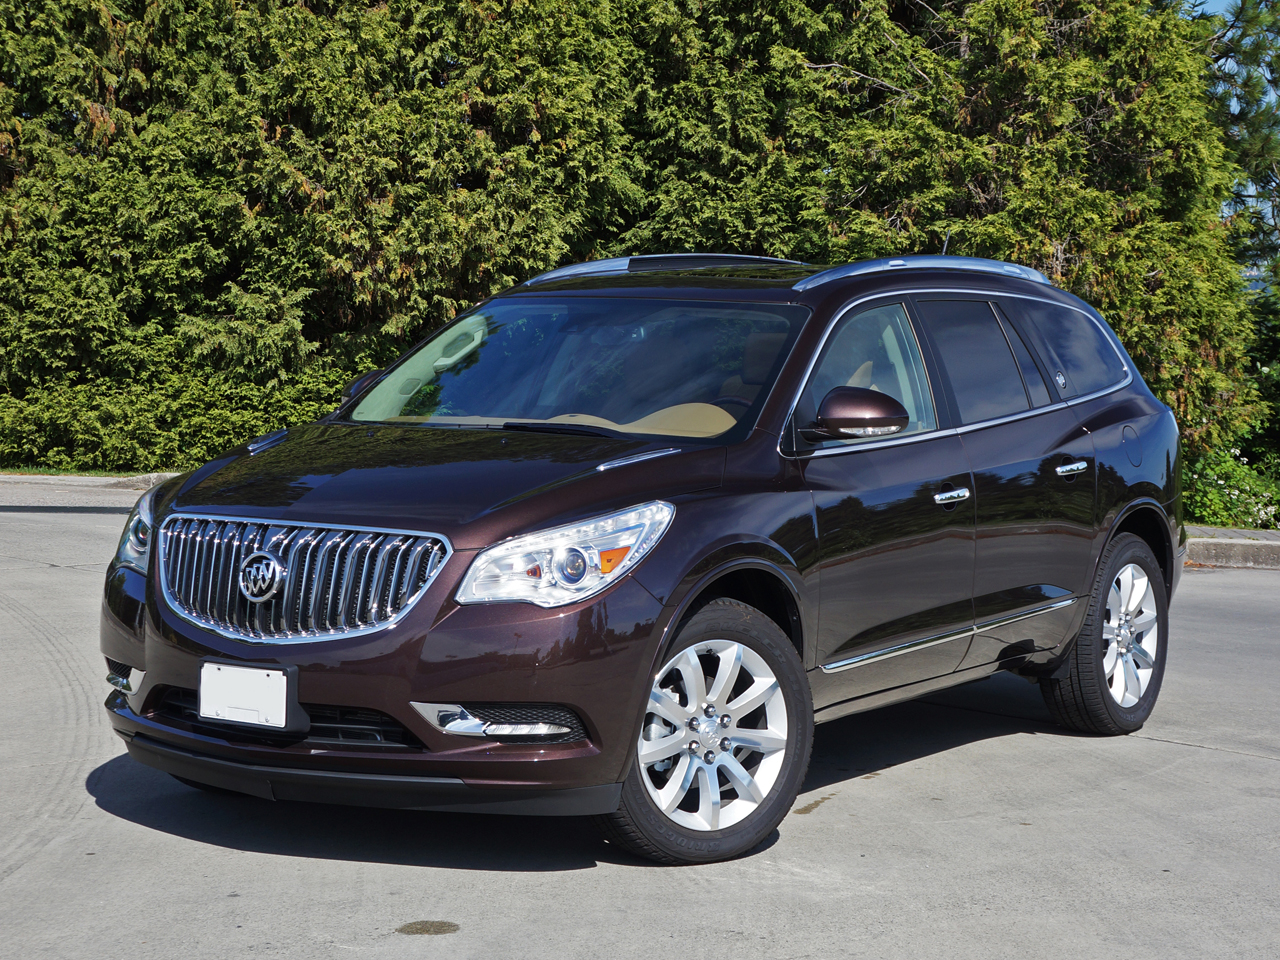 2016 Buick Enclave Premium Awd Road Test Review